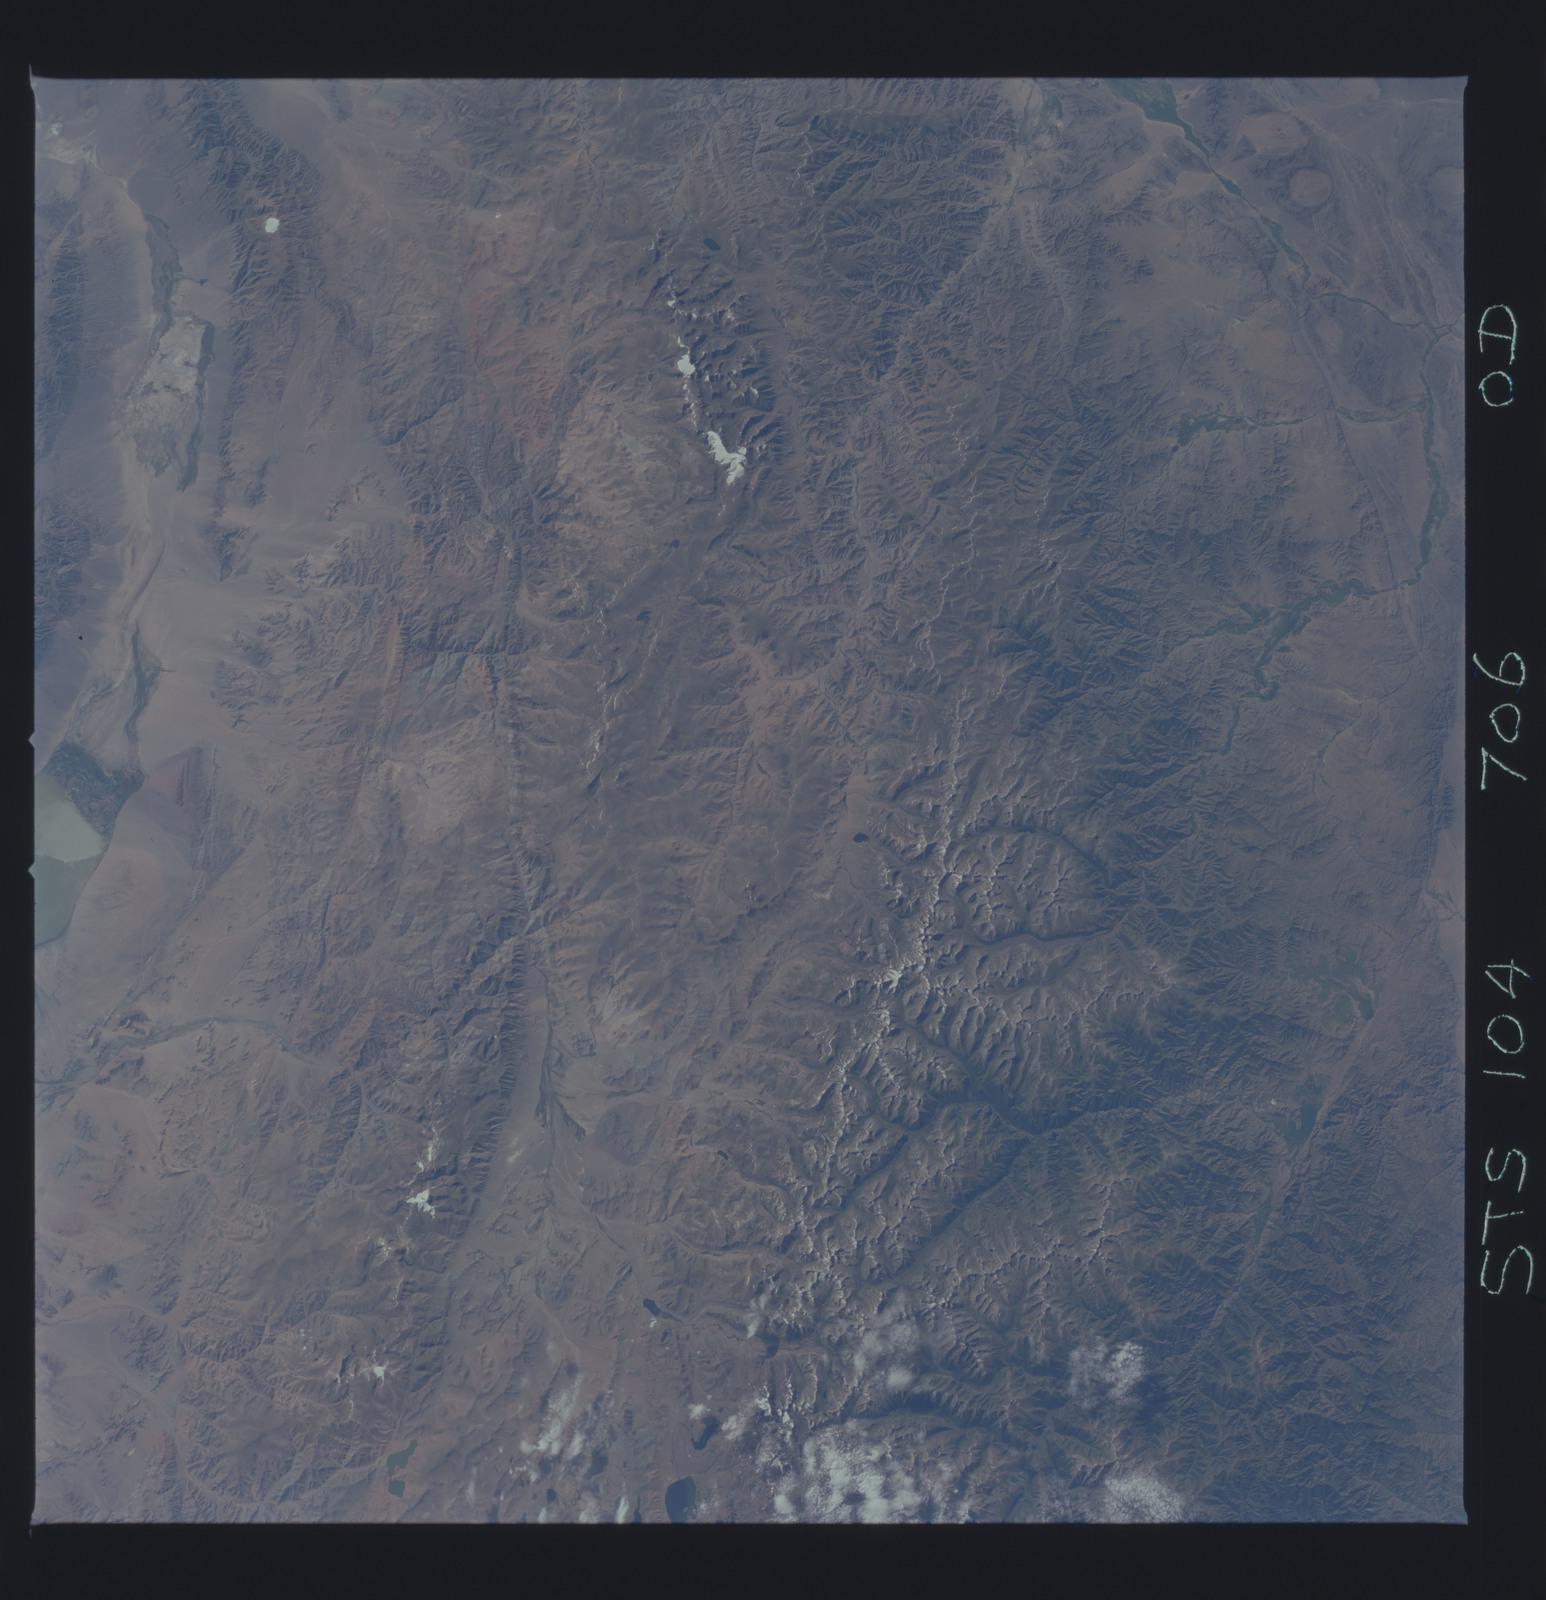 STS104-706-000D - STS-104 - Earth Observation taken by the STS-104 crew